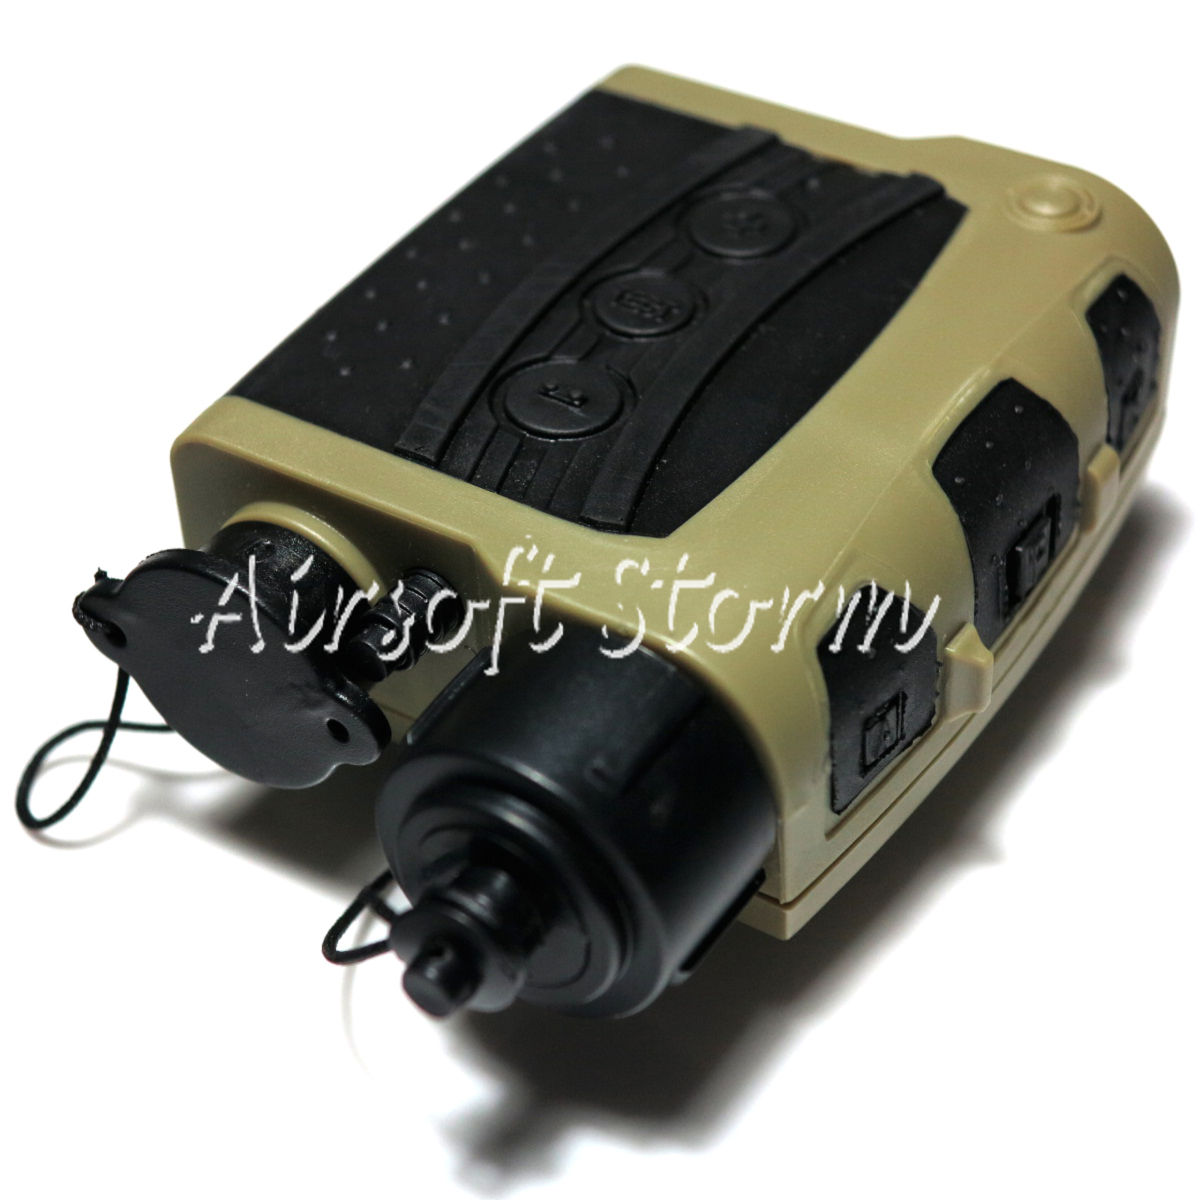 Airsoft SWAT Communications Gear Z Tactical ZQUIET PRO PTT & Wire for Motorola 2 Pin Radio